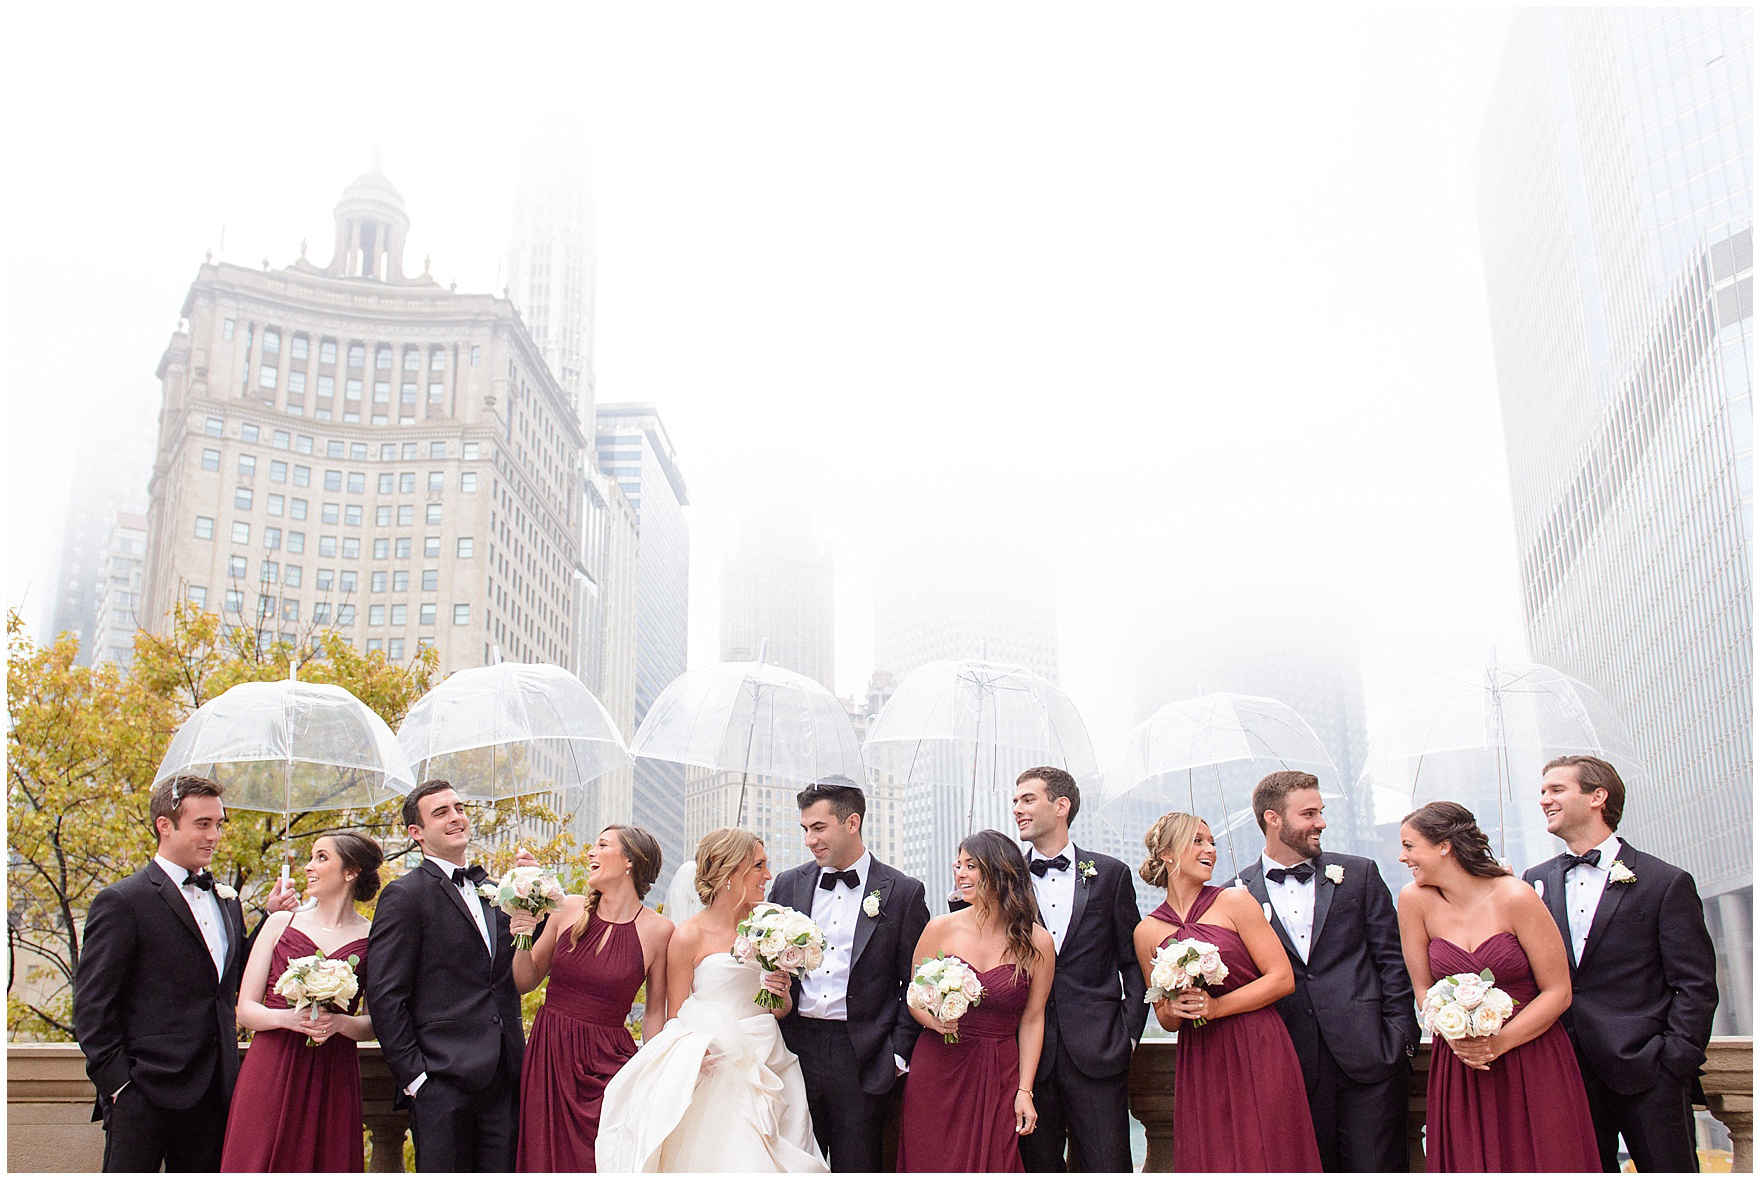 A bride and groom and their bridal party pose along the Chicago river holding umbrellas on a rainy day during a St. Clement Germania Place Chicago wedding.